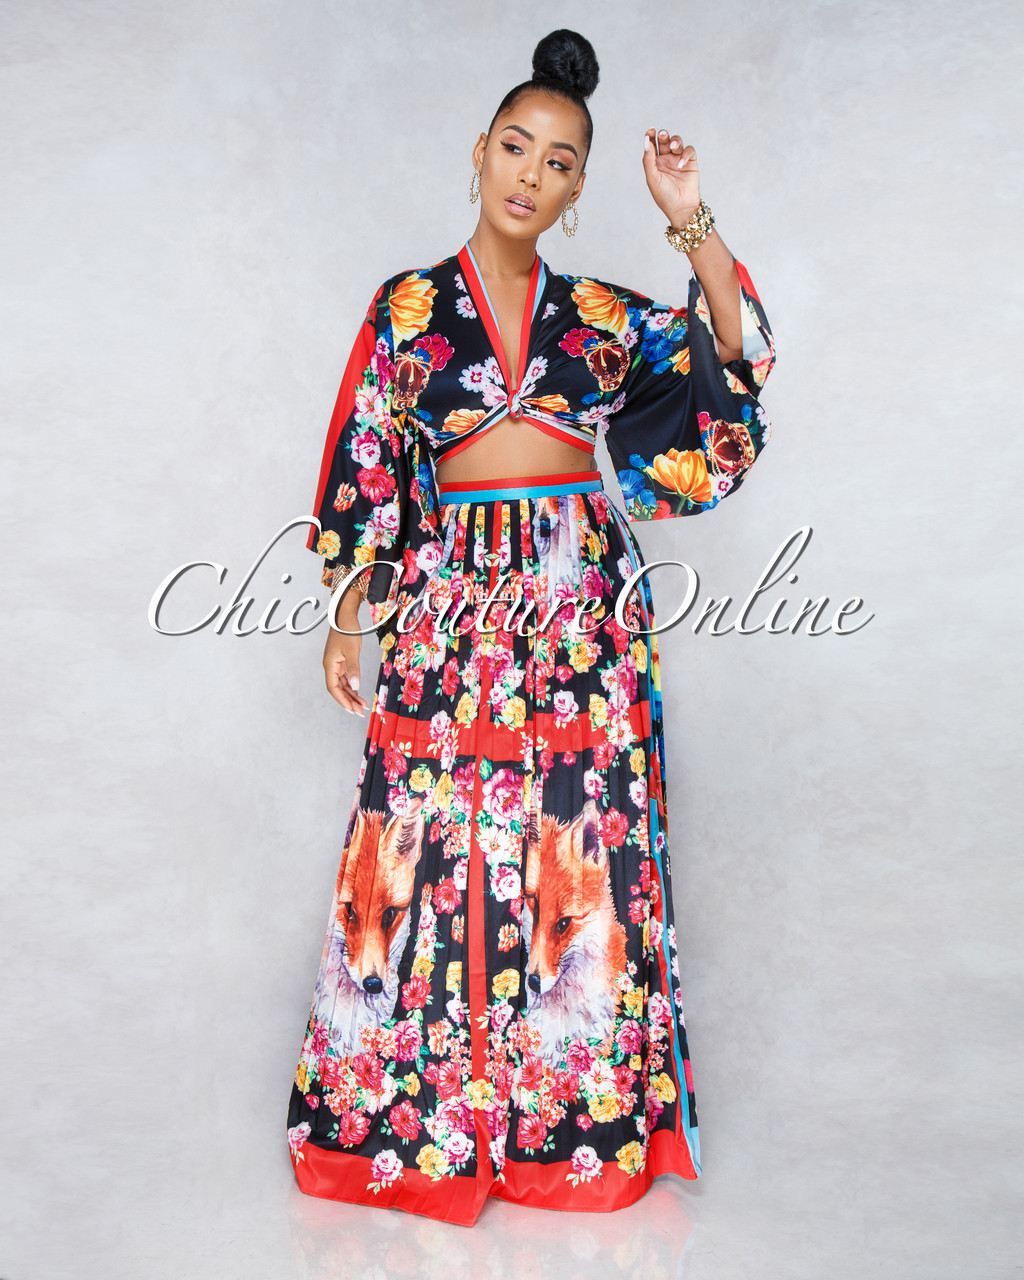 b3a328f7821b Foxy Black Multi-Color Print Two Piece Pleated Skirt Set. Price: $85.00. or  4 interest-free installments of $21.25 by Afterpay ⓘ. Image 1. Larger /  More ...